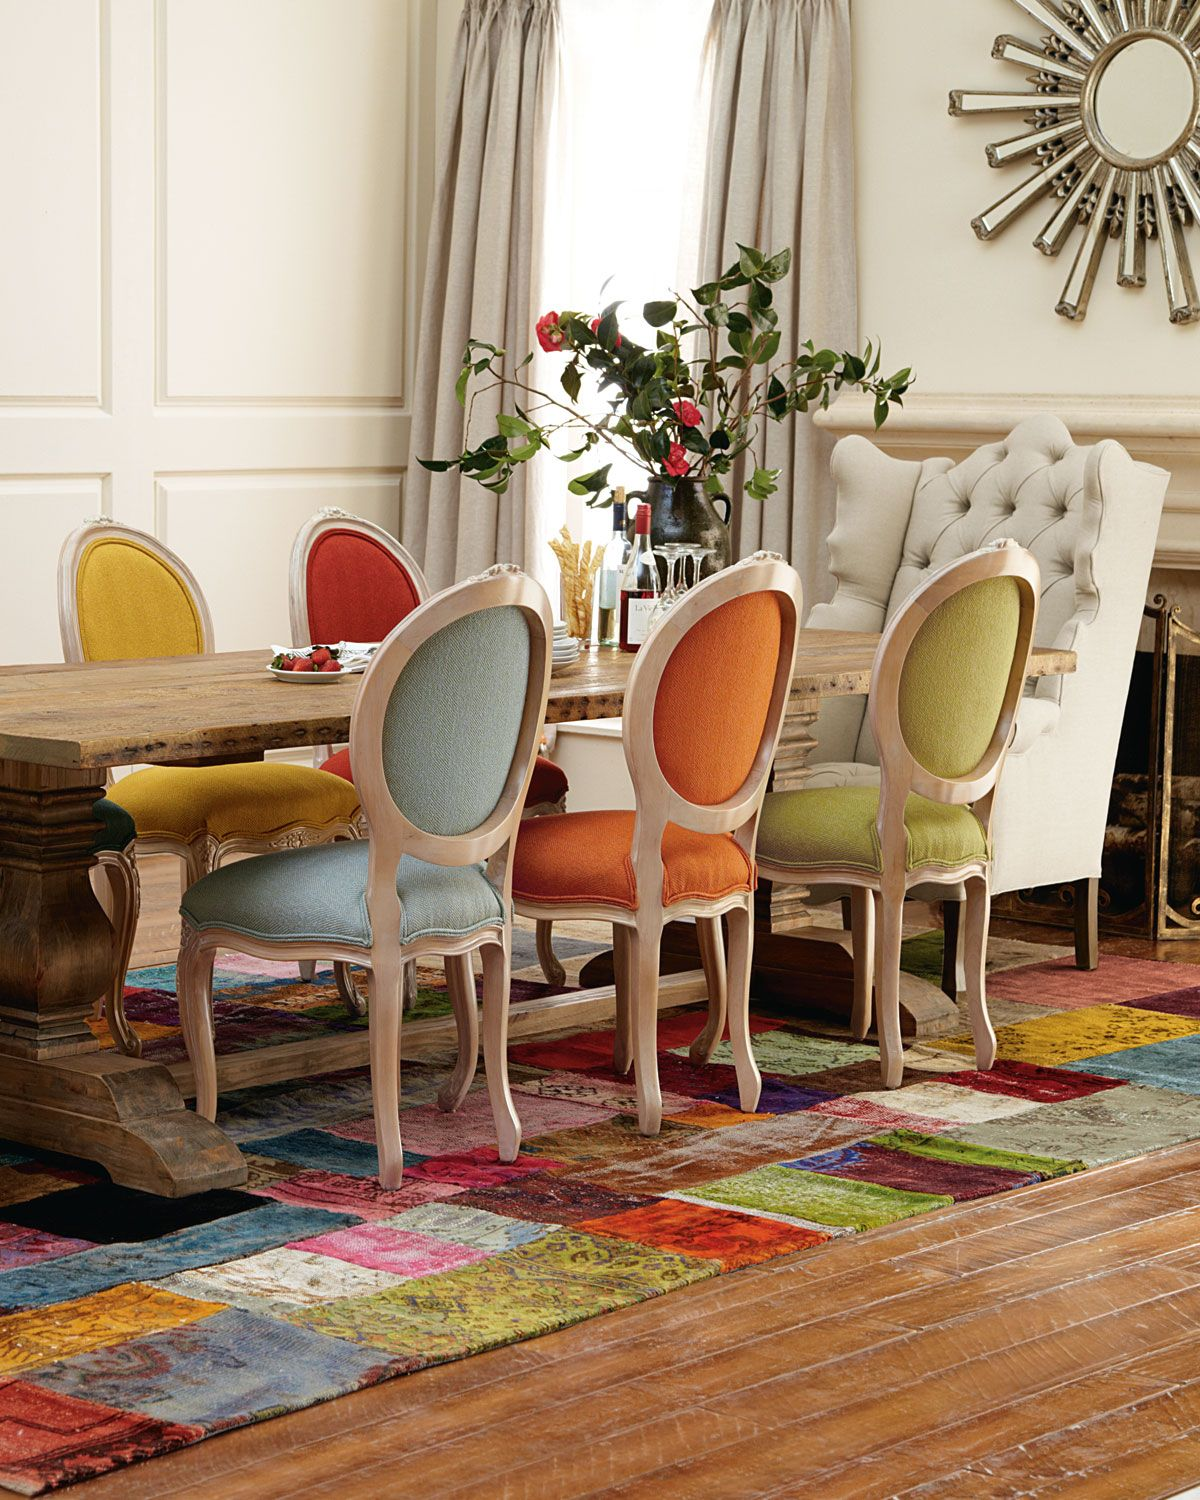 20 Mix And Match Dining Chairs Design Ideas Eclectic Dining